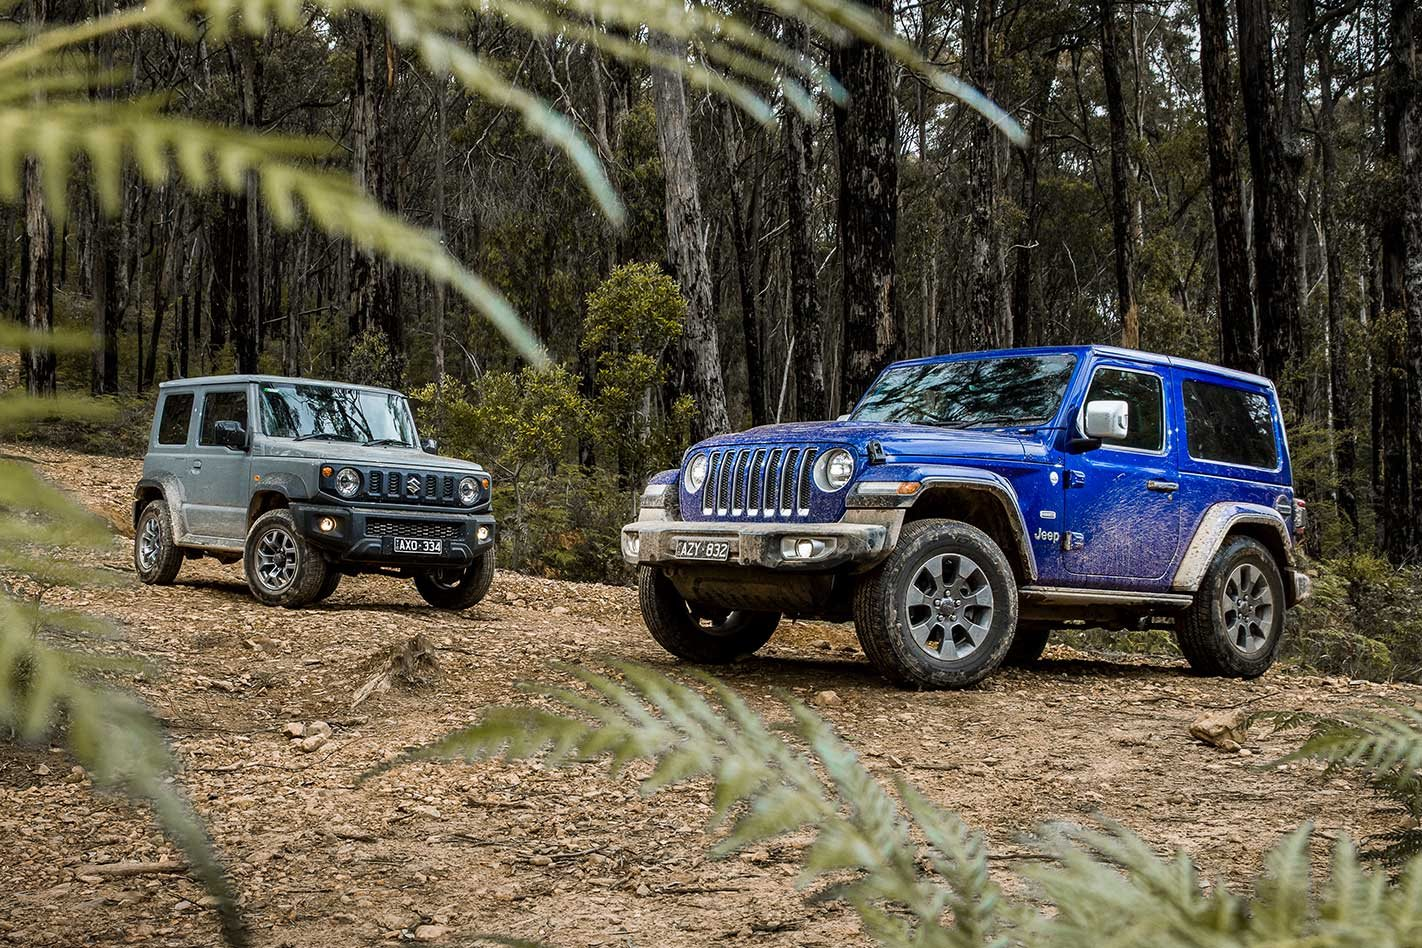 Suzuki Jimny Vs Jeep Wrangler Overland 2019 Comparison